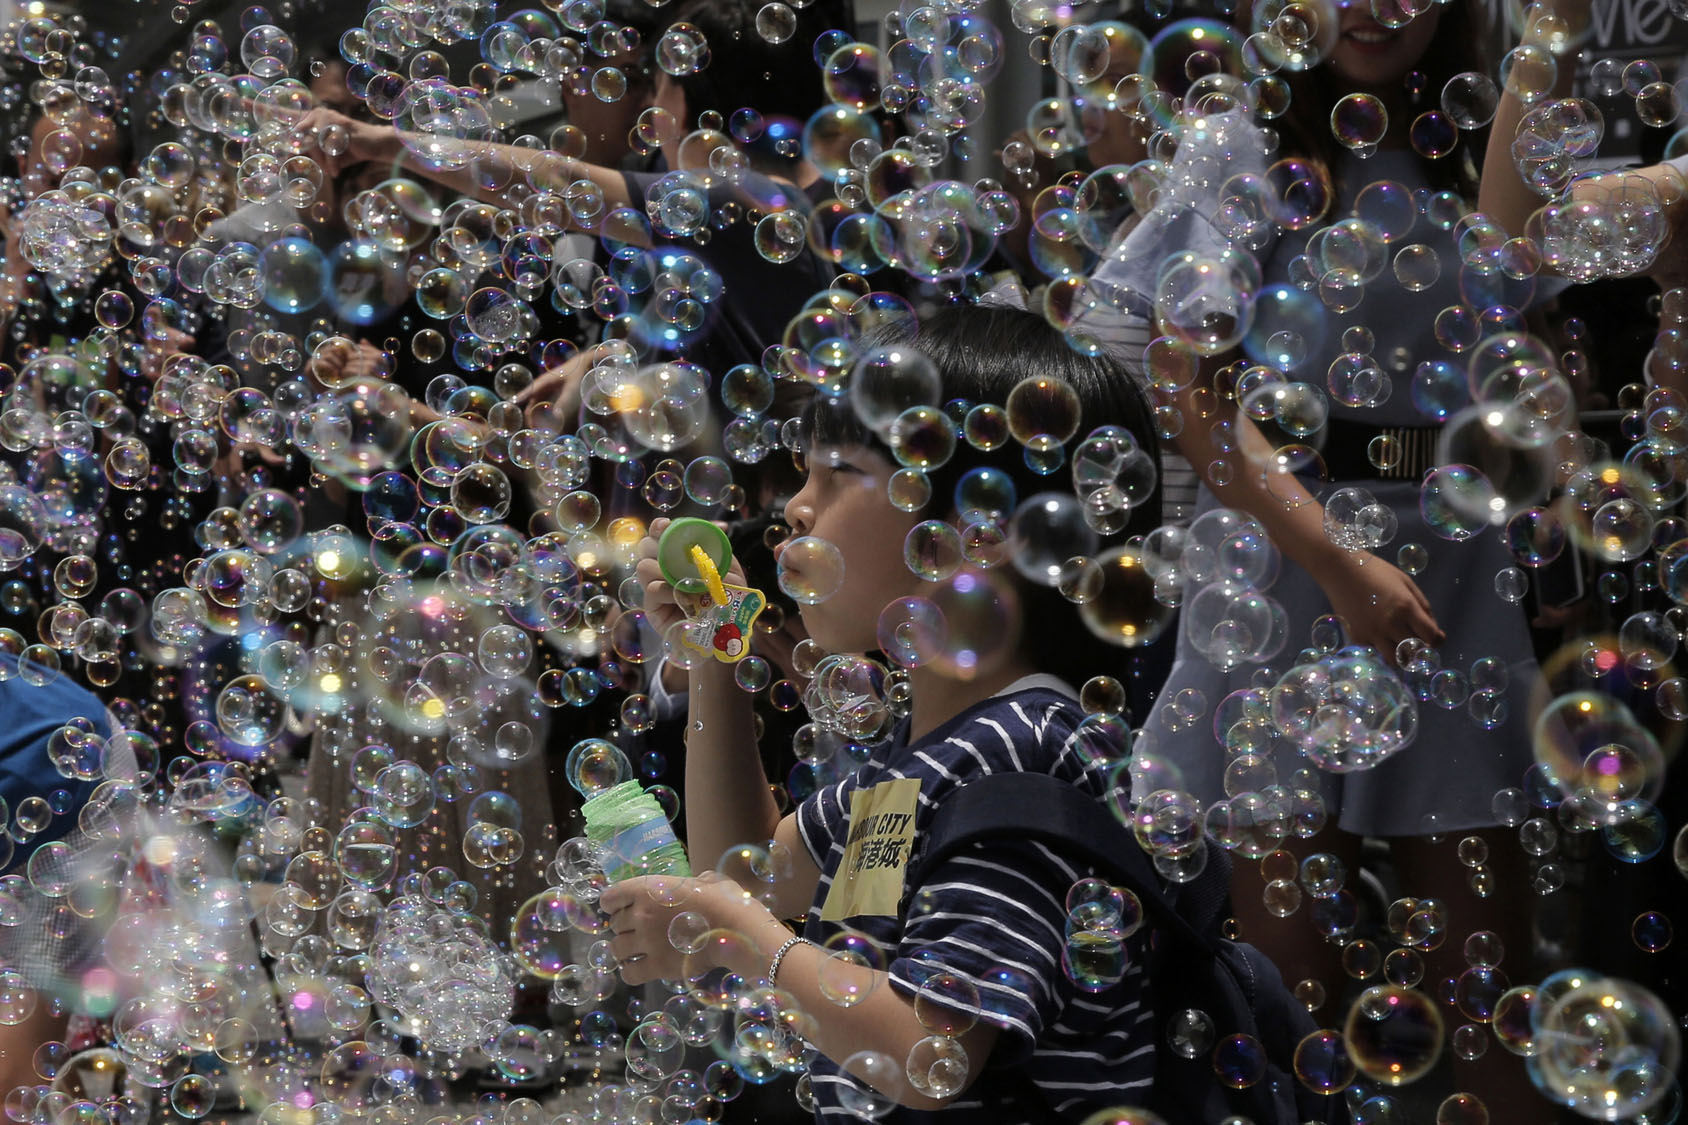 'Bubble Up' installation in Hong Kong